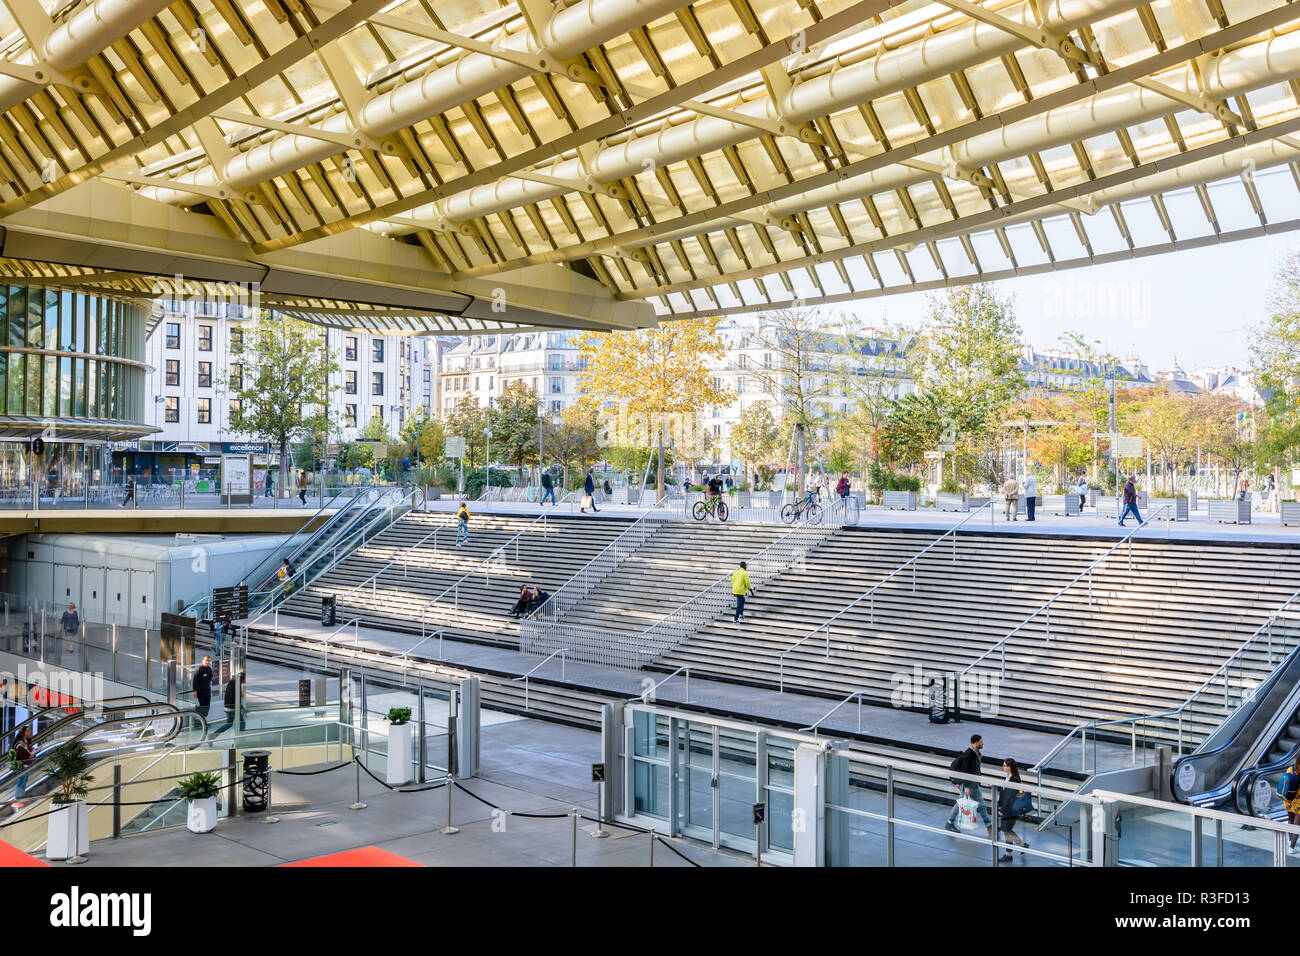 The large stairways leading down to the Forum des Halles underground shopping mall in the center of Paris, covered by a vast glass and steel canopy. - Stock Image